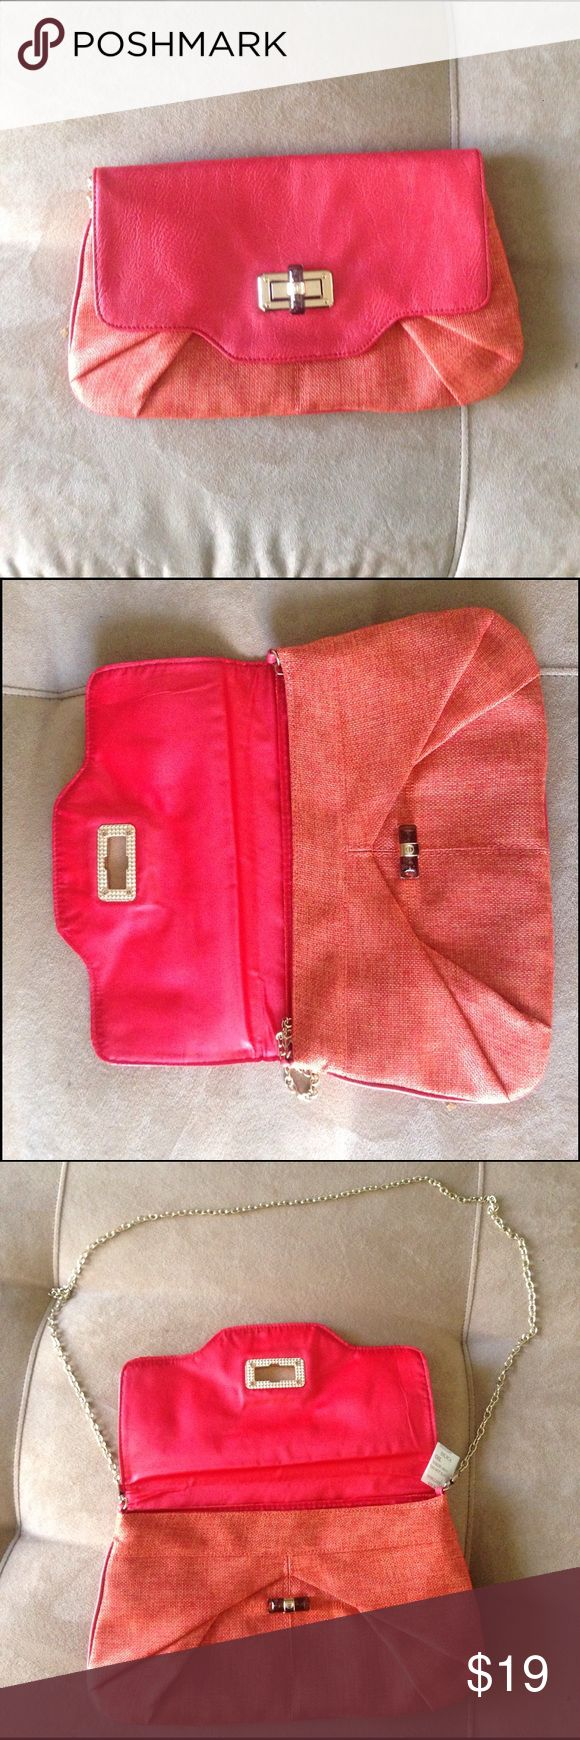 Orange canvas/ watermelon leather envelope clutch Great size for day or night.  Tortoise closure.  Gold chain shoulder strap.  Perfect for spring and year round.  12*6*.5 Bags Clutches & Wristlets